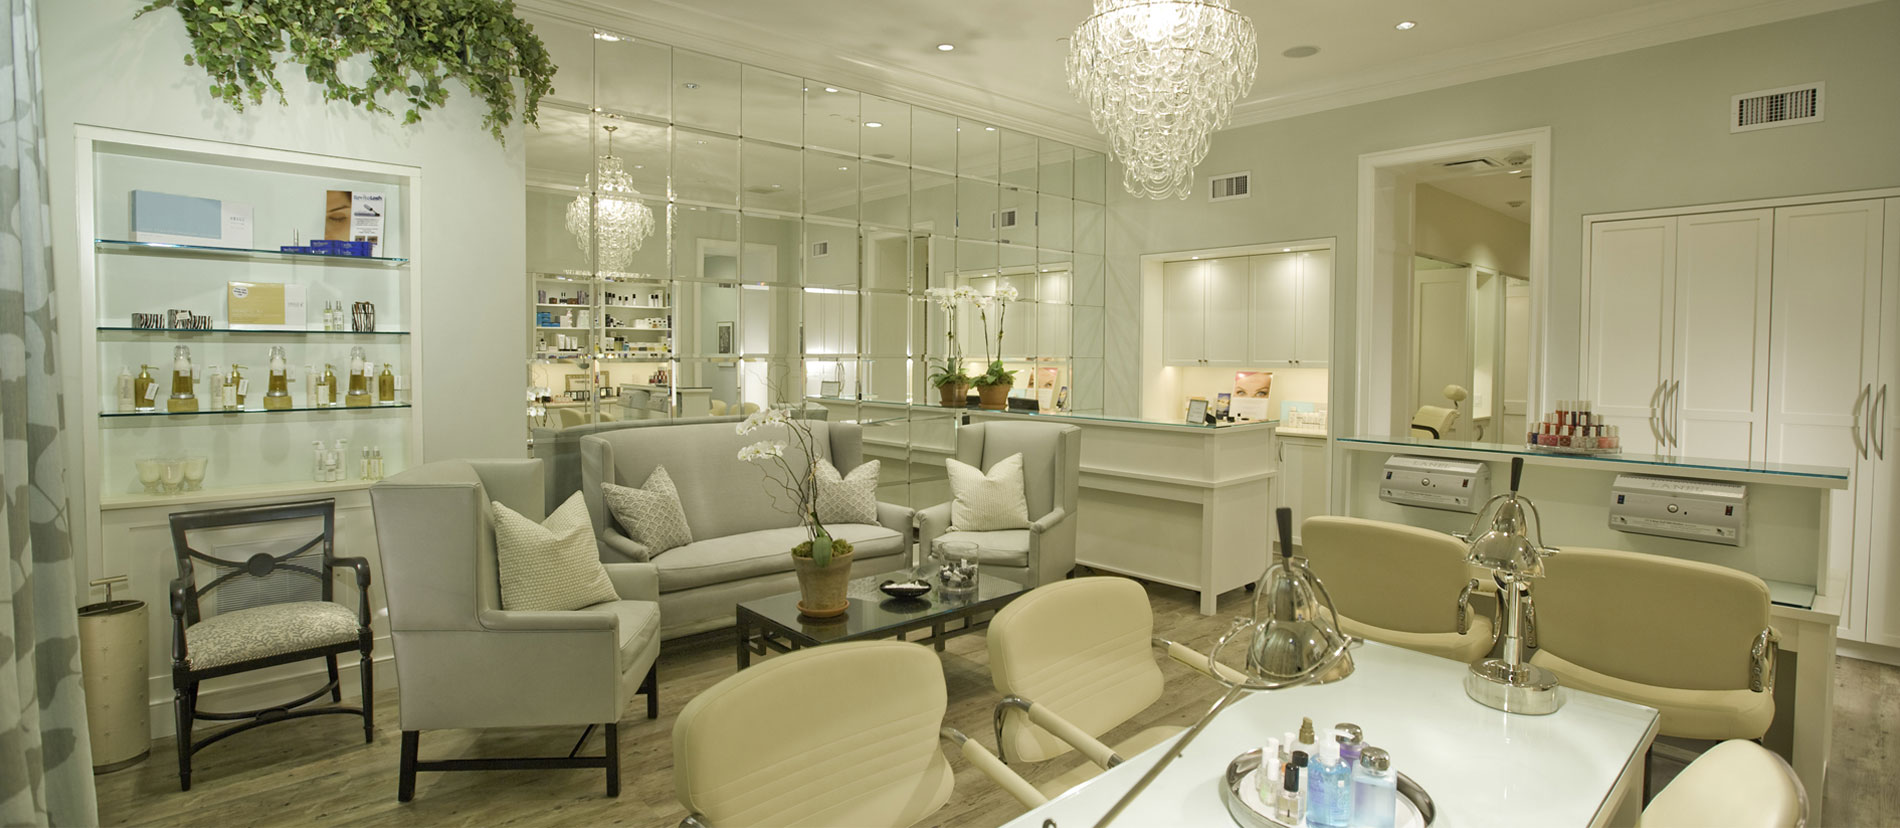 Williams & Company - Body and skin care clinic